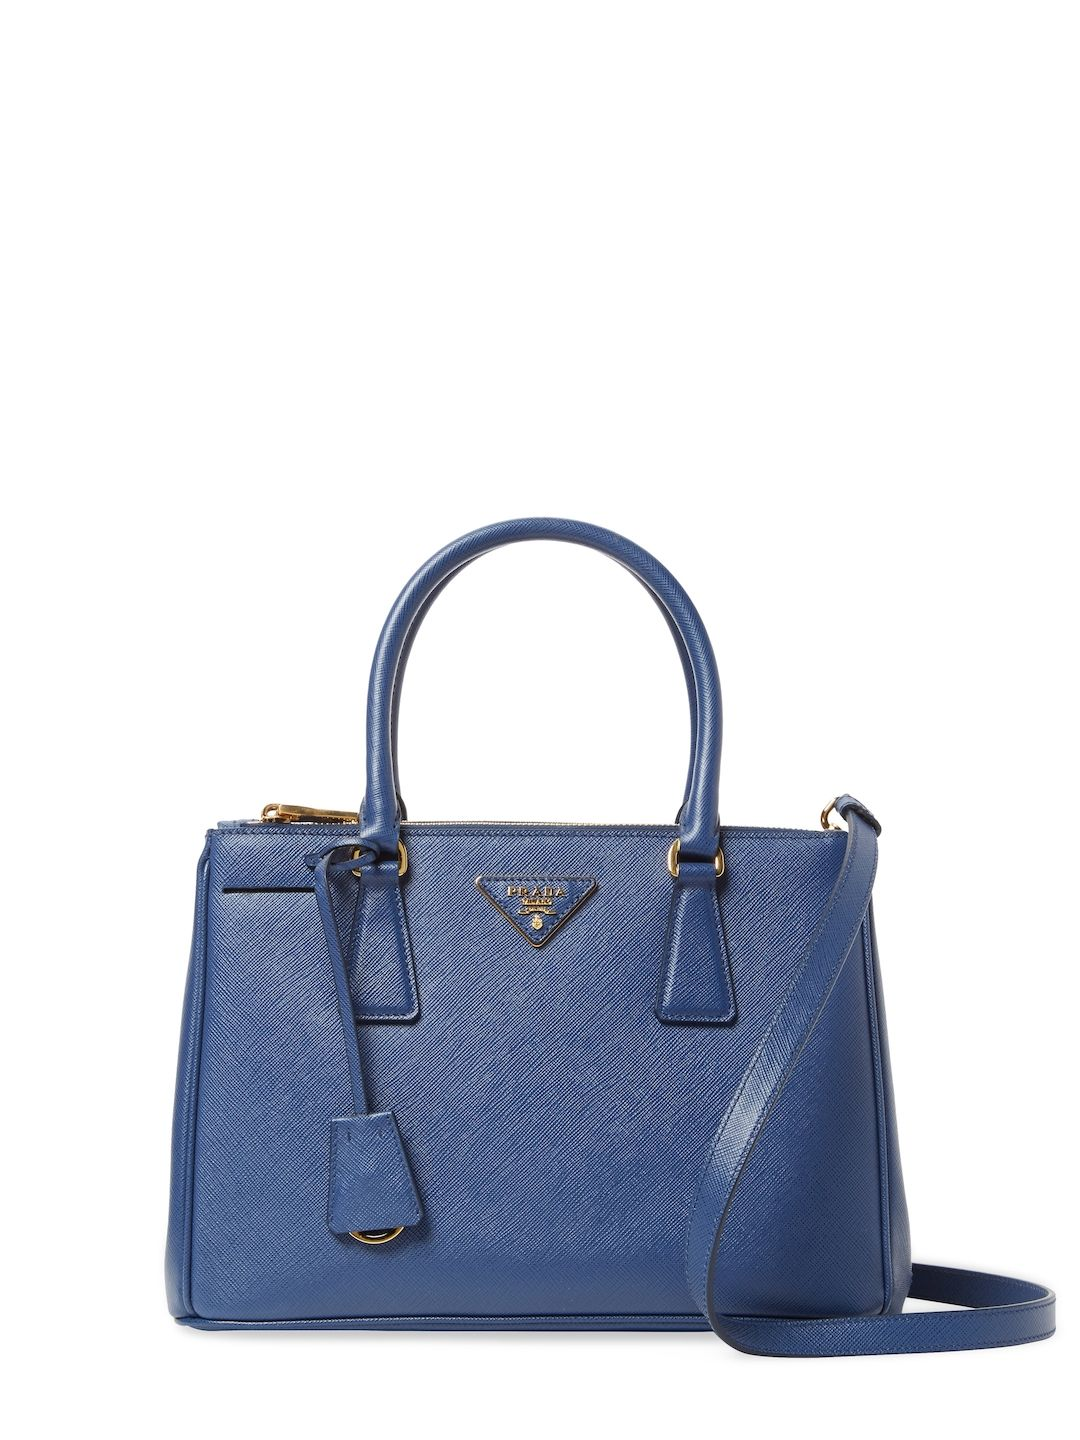 dd9d9a8729d0 PRADA GALLERIA DOUBLE ZIP SMALL SAFFIANO LEATHER TOTE.  prada  bags   shoulder bags  hand bags  leather  tote  lining